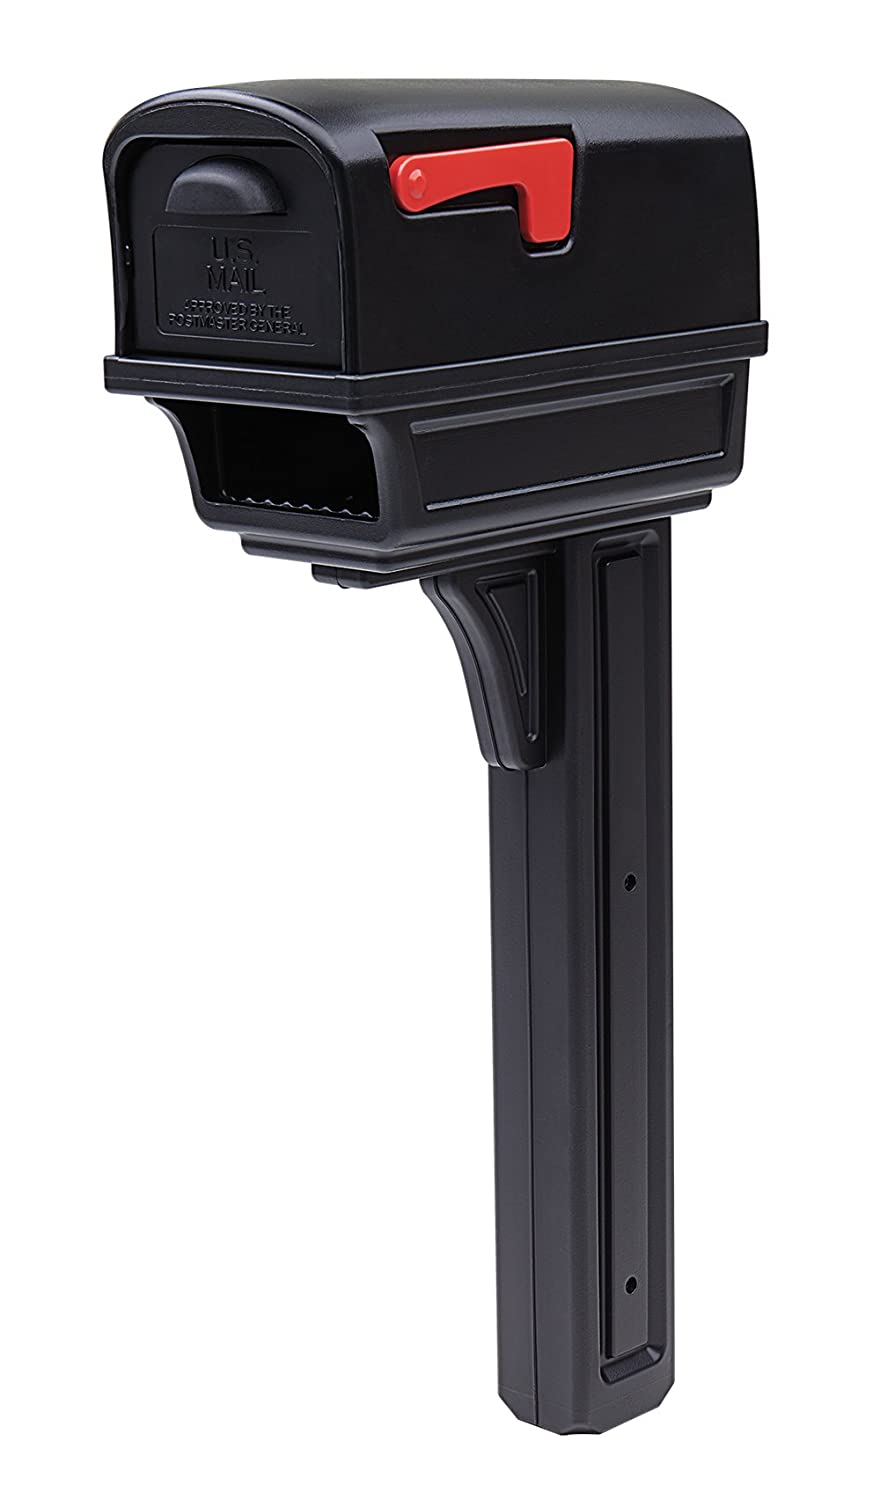 Gibraltar Mailboxes GentryLarge Capacity Double-Walled Plastic Black, All-In-One Mailbox & Post Combo Kit, GGC1B0000